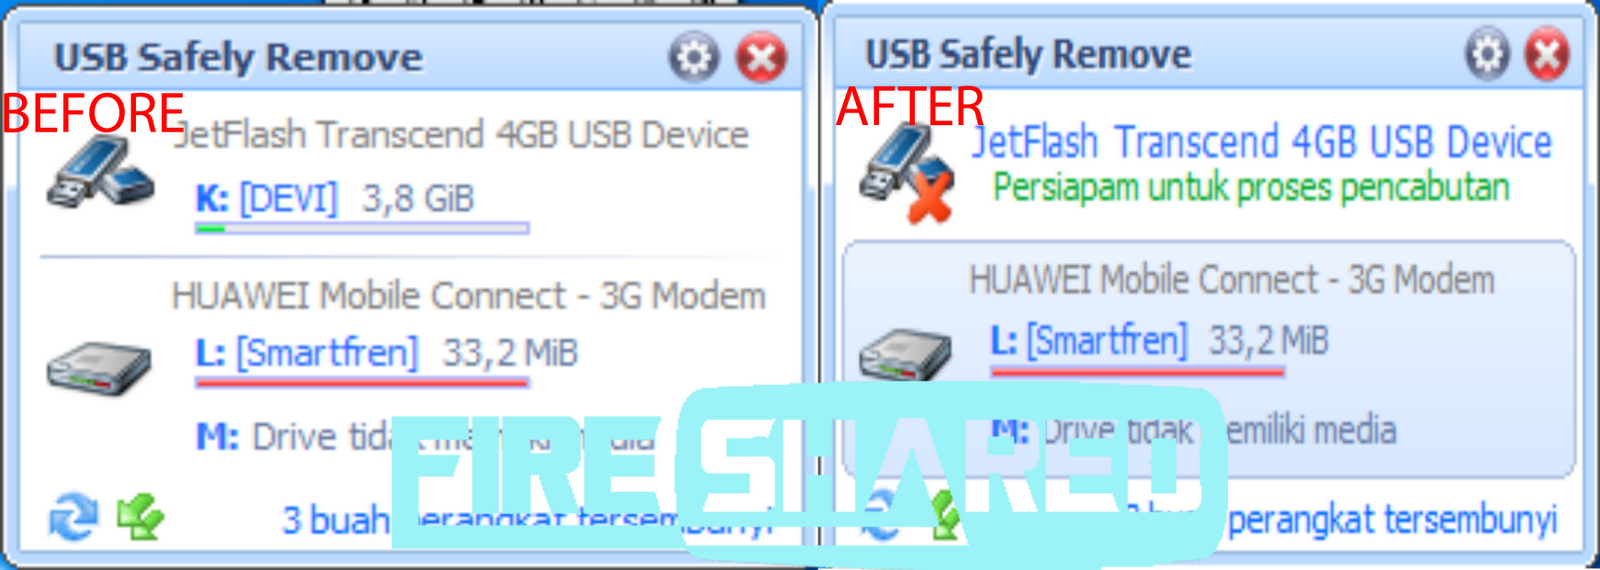 Pc suite for sony ericsson download. free download usb safely remove with c